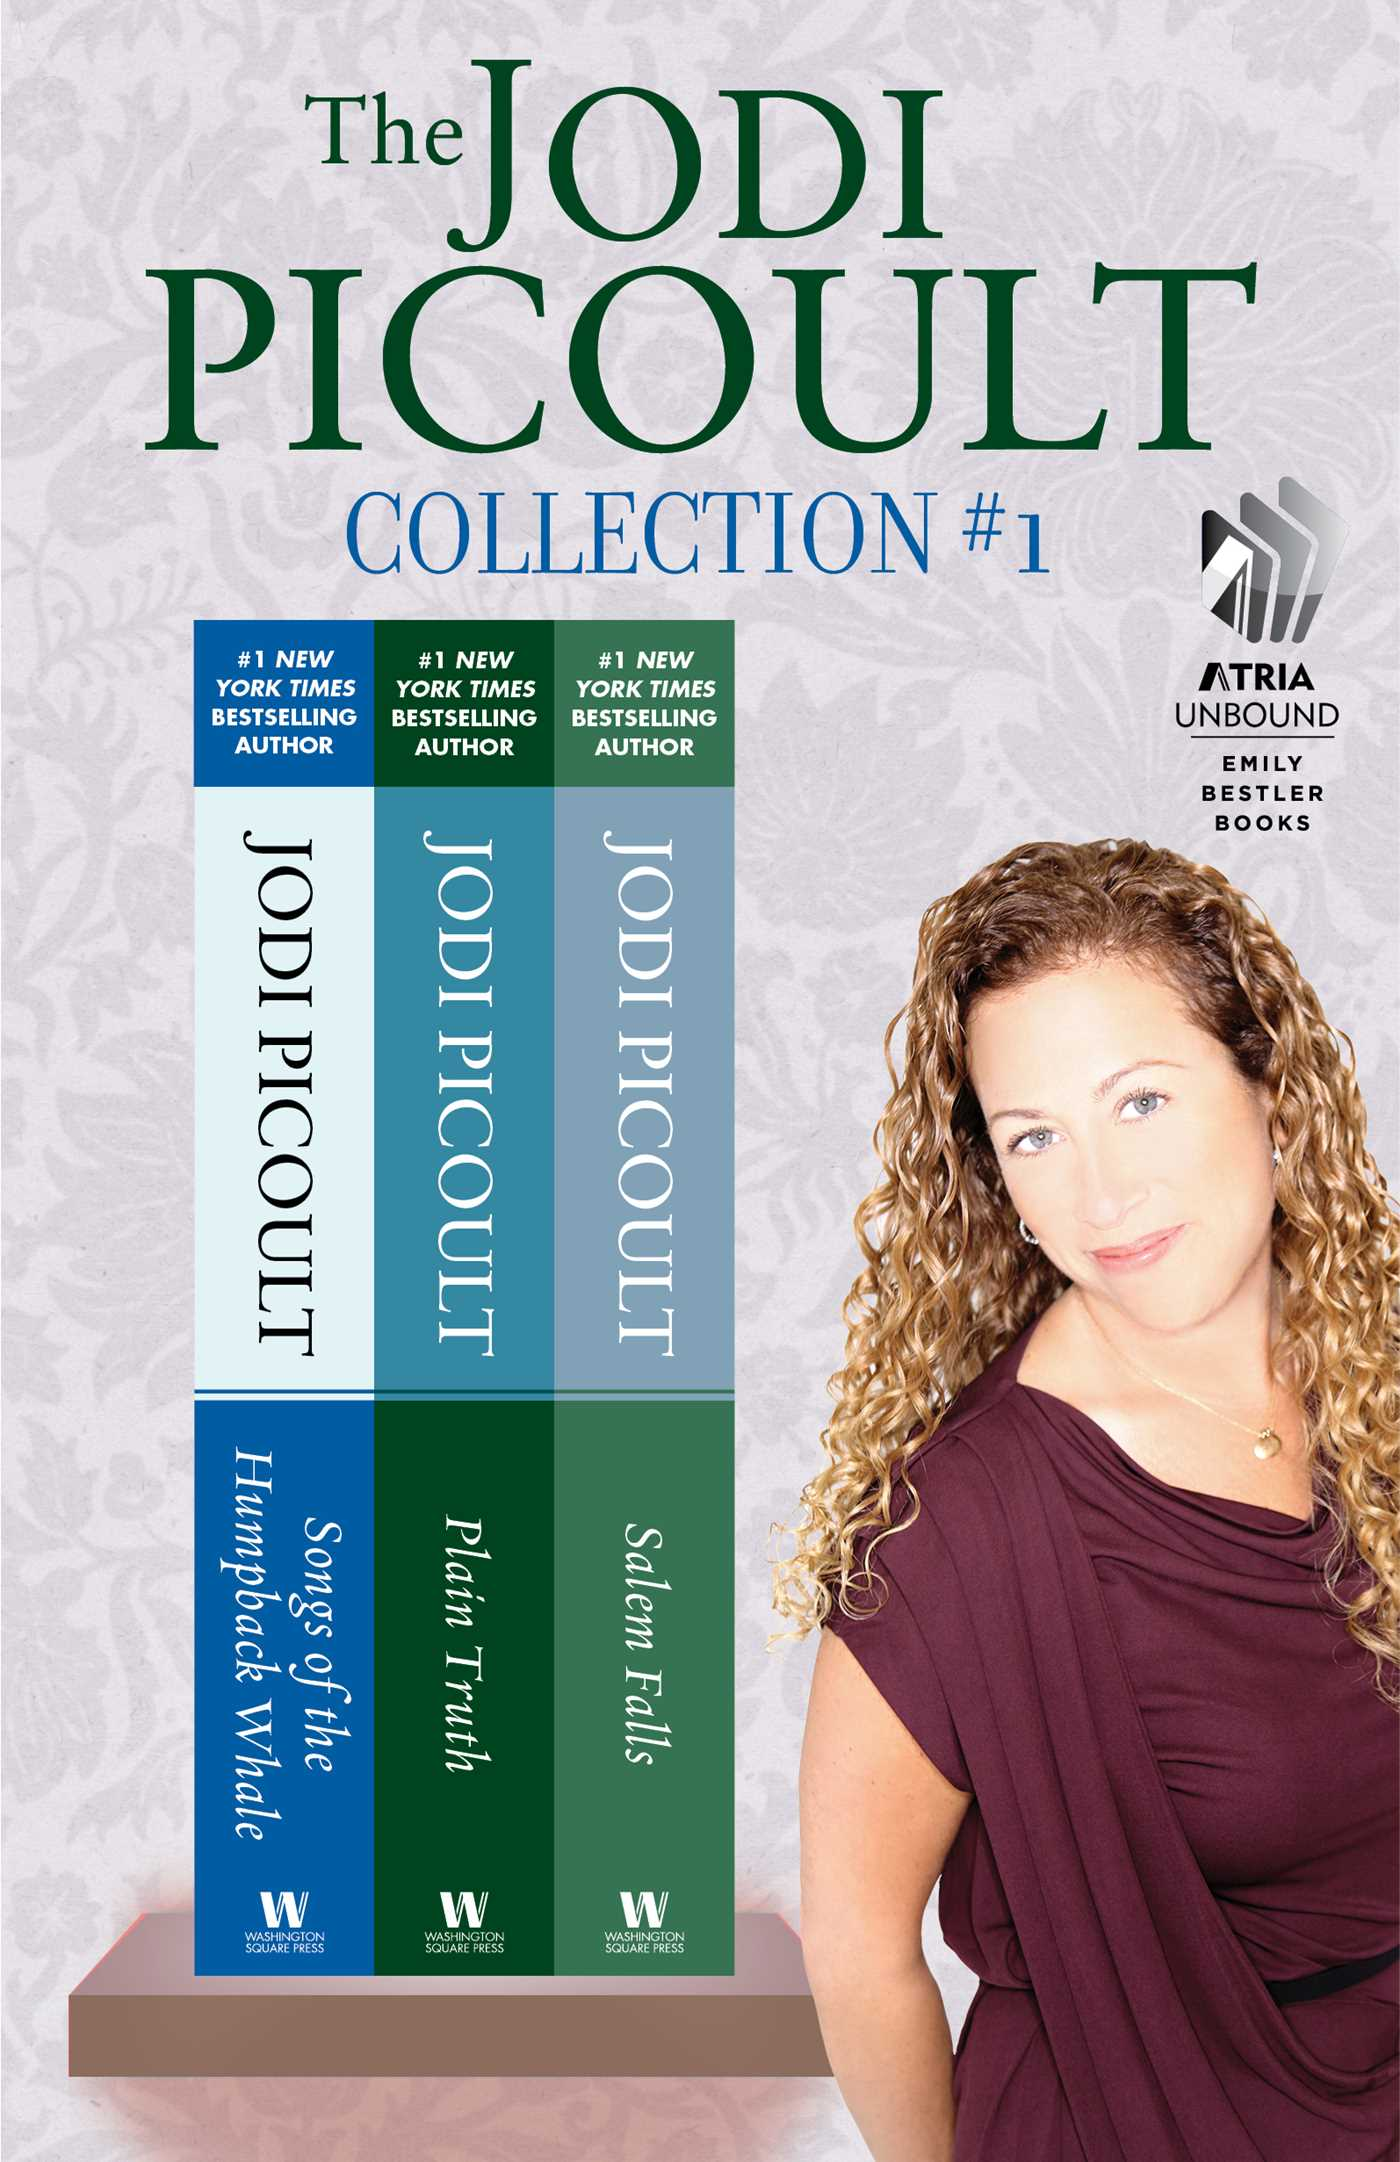 Jodi-picoult-collection-1-9781476703862_hr